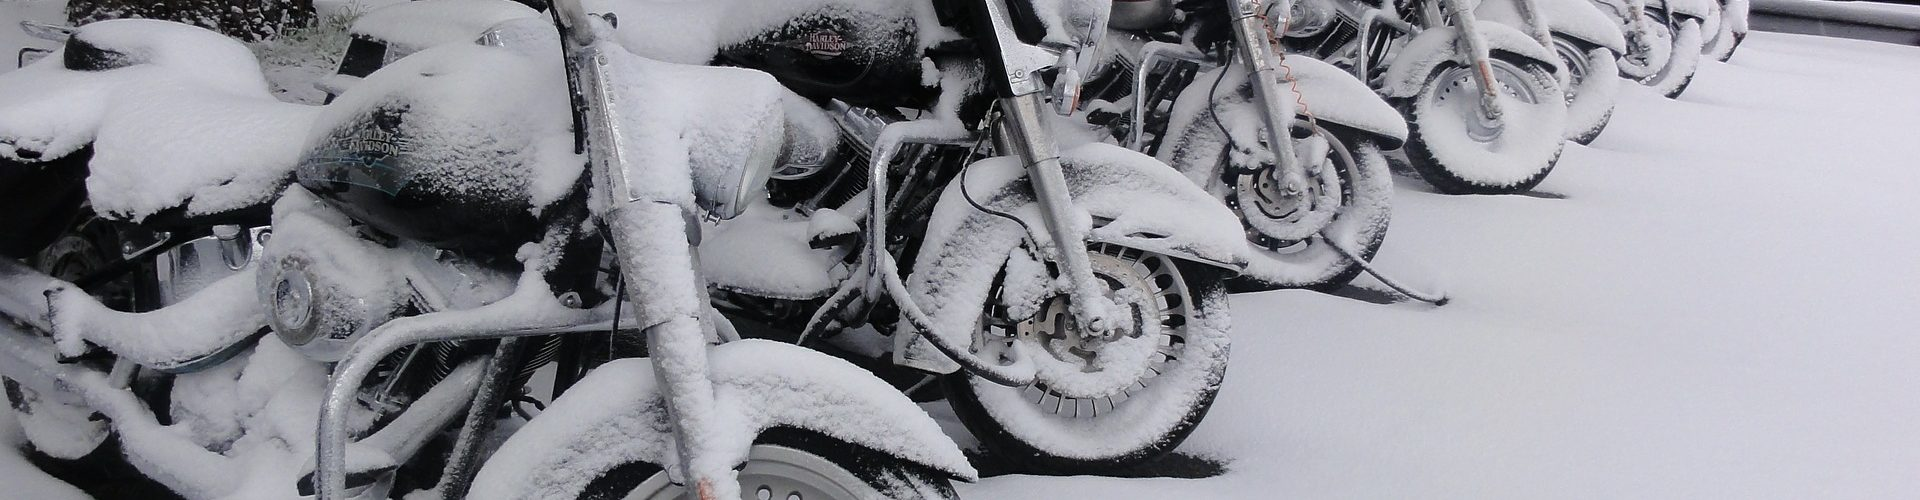 Motorcycle winter storage